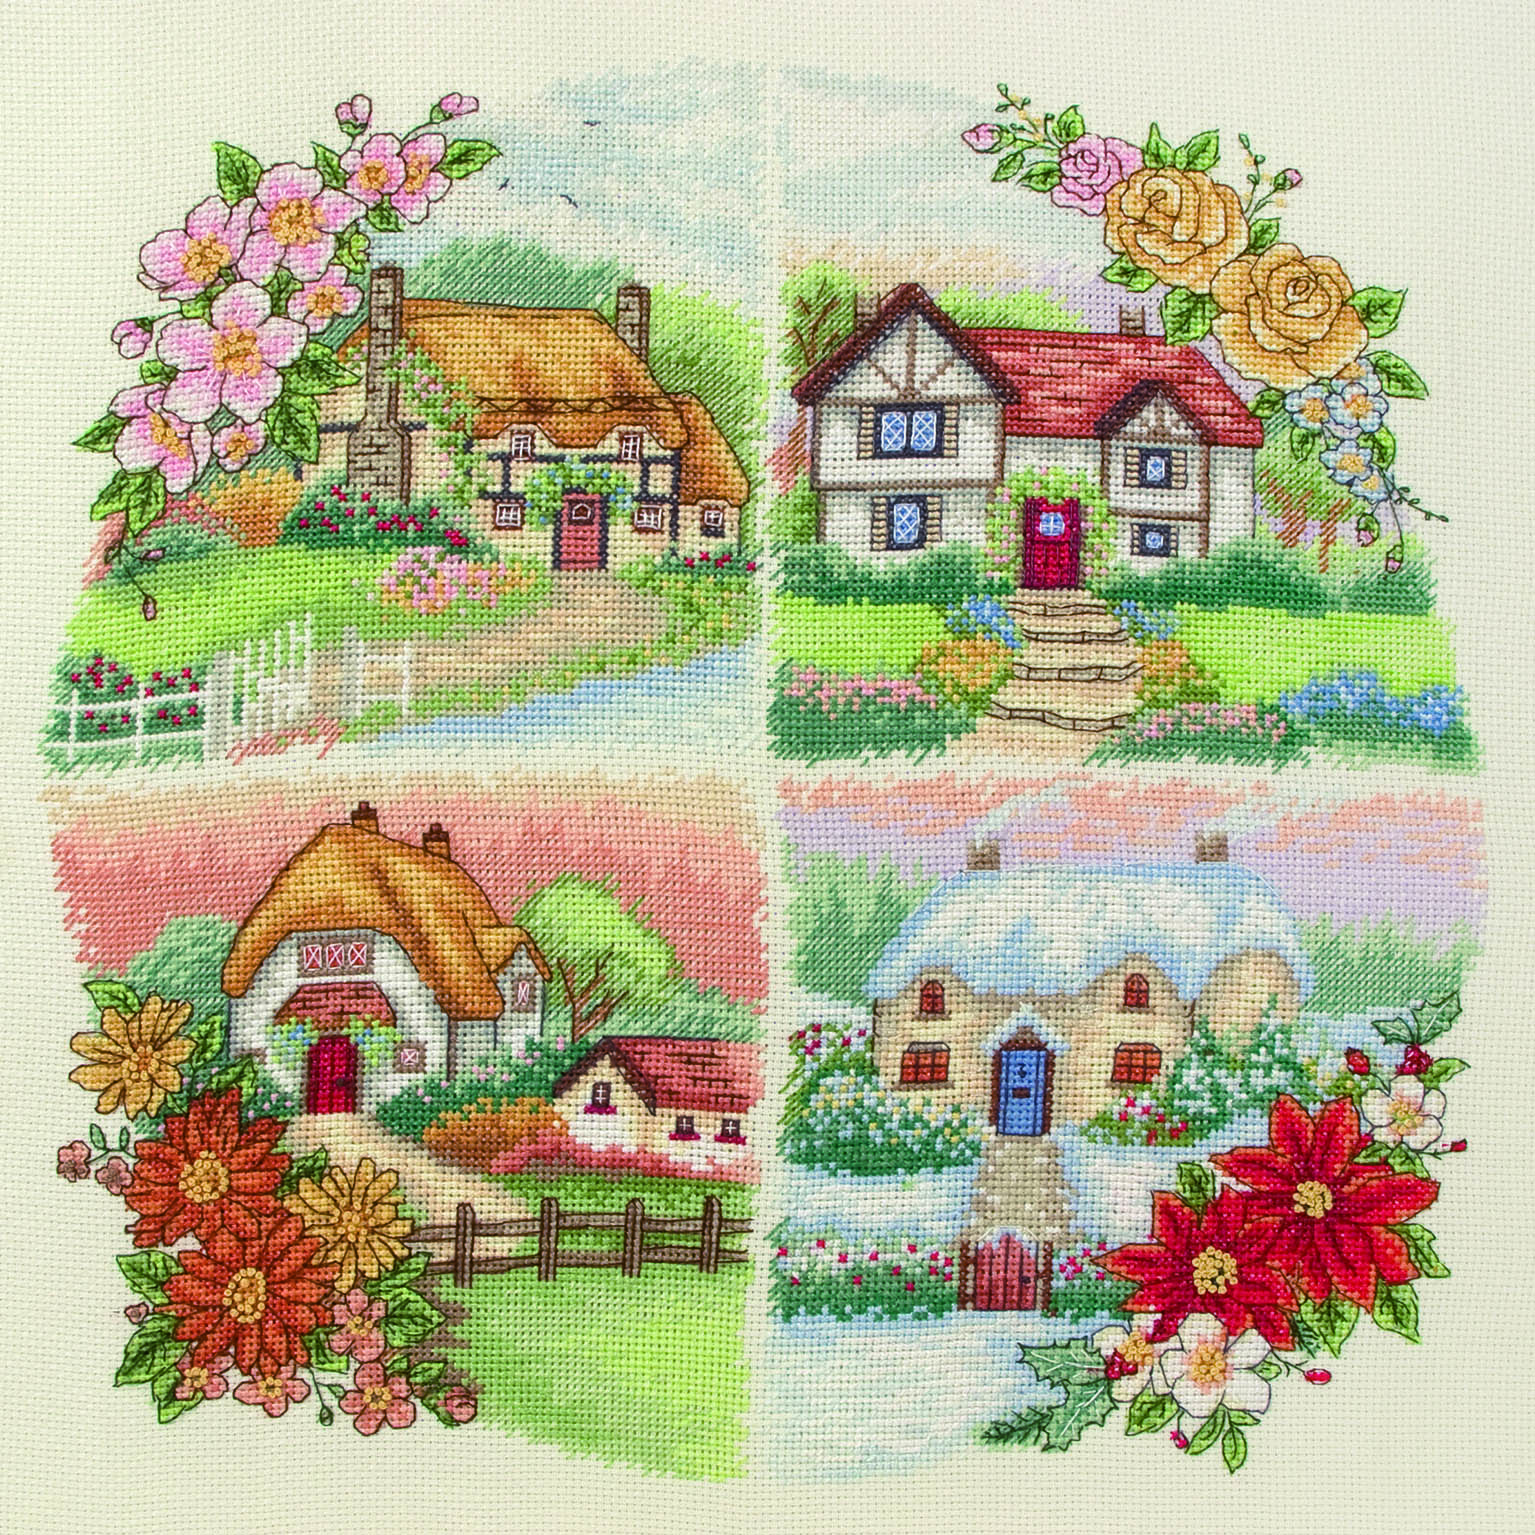 PCE750 Anchor Cross Stitch Penguins Seasonal Cottages. Anchor. Набор для вышивания нитками